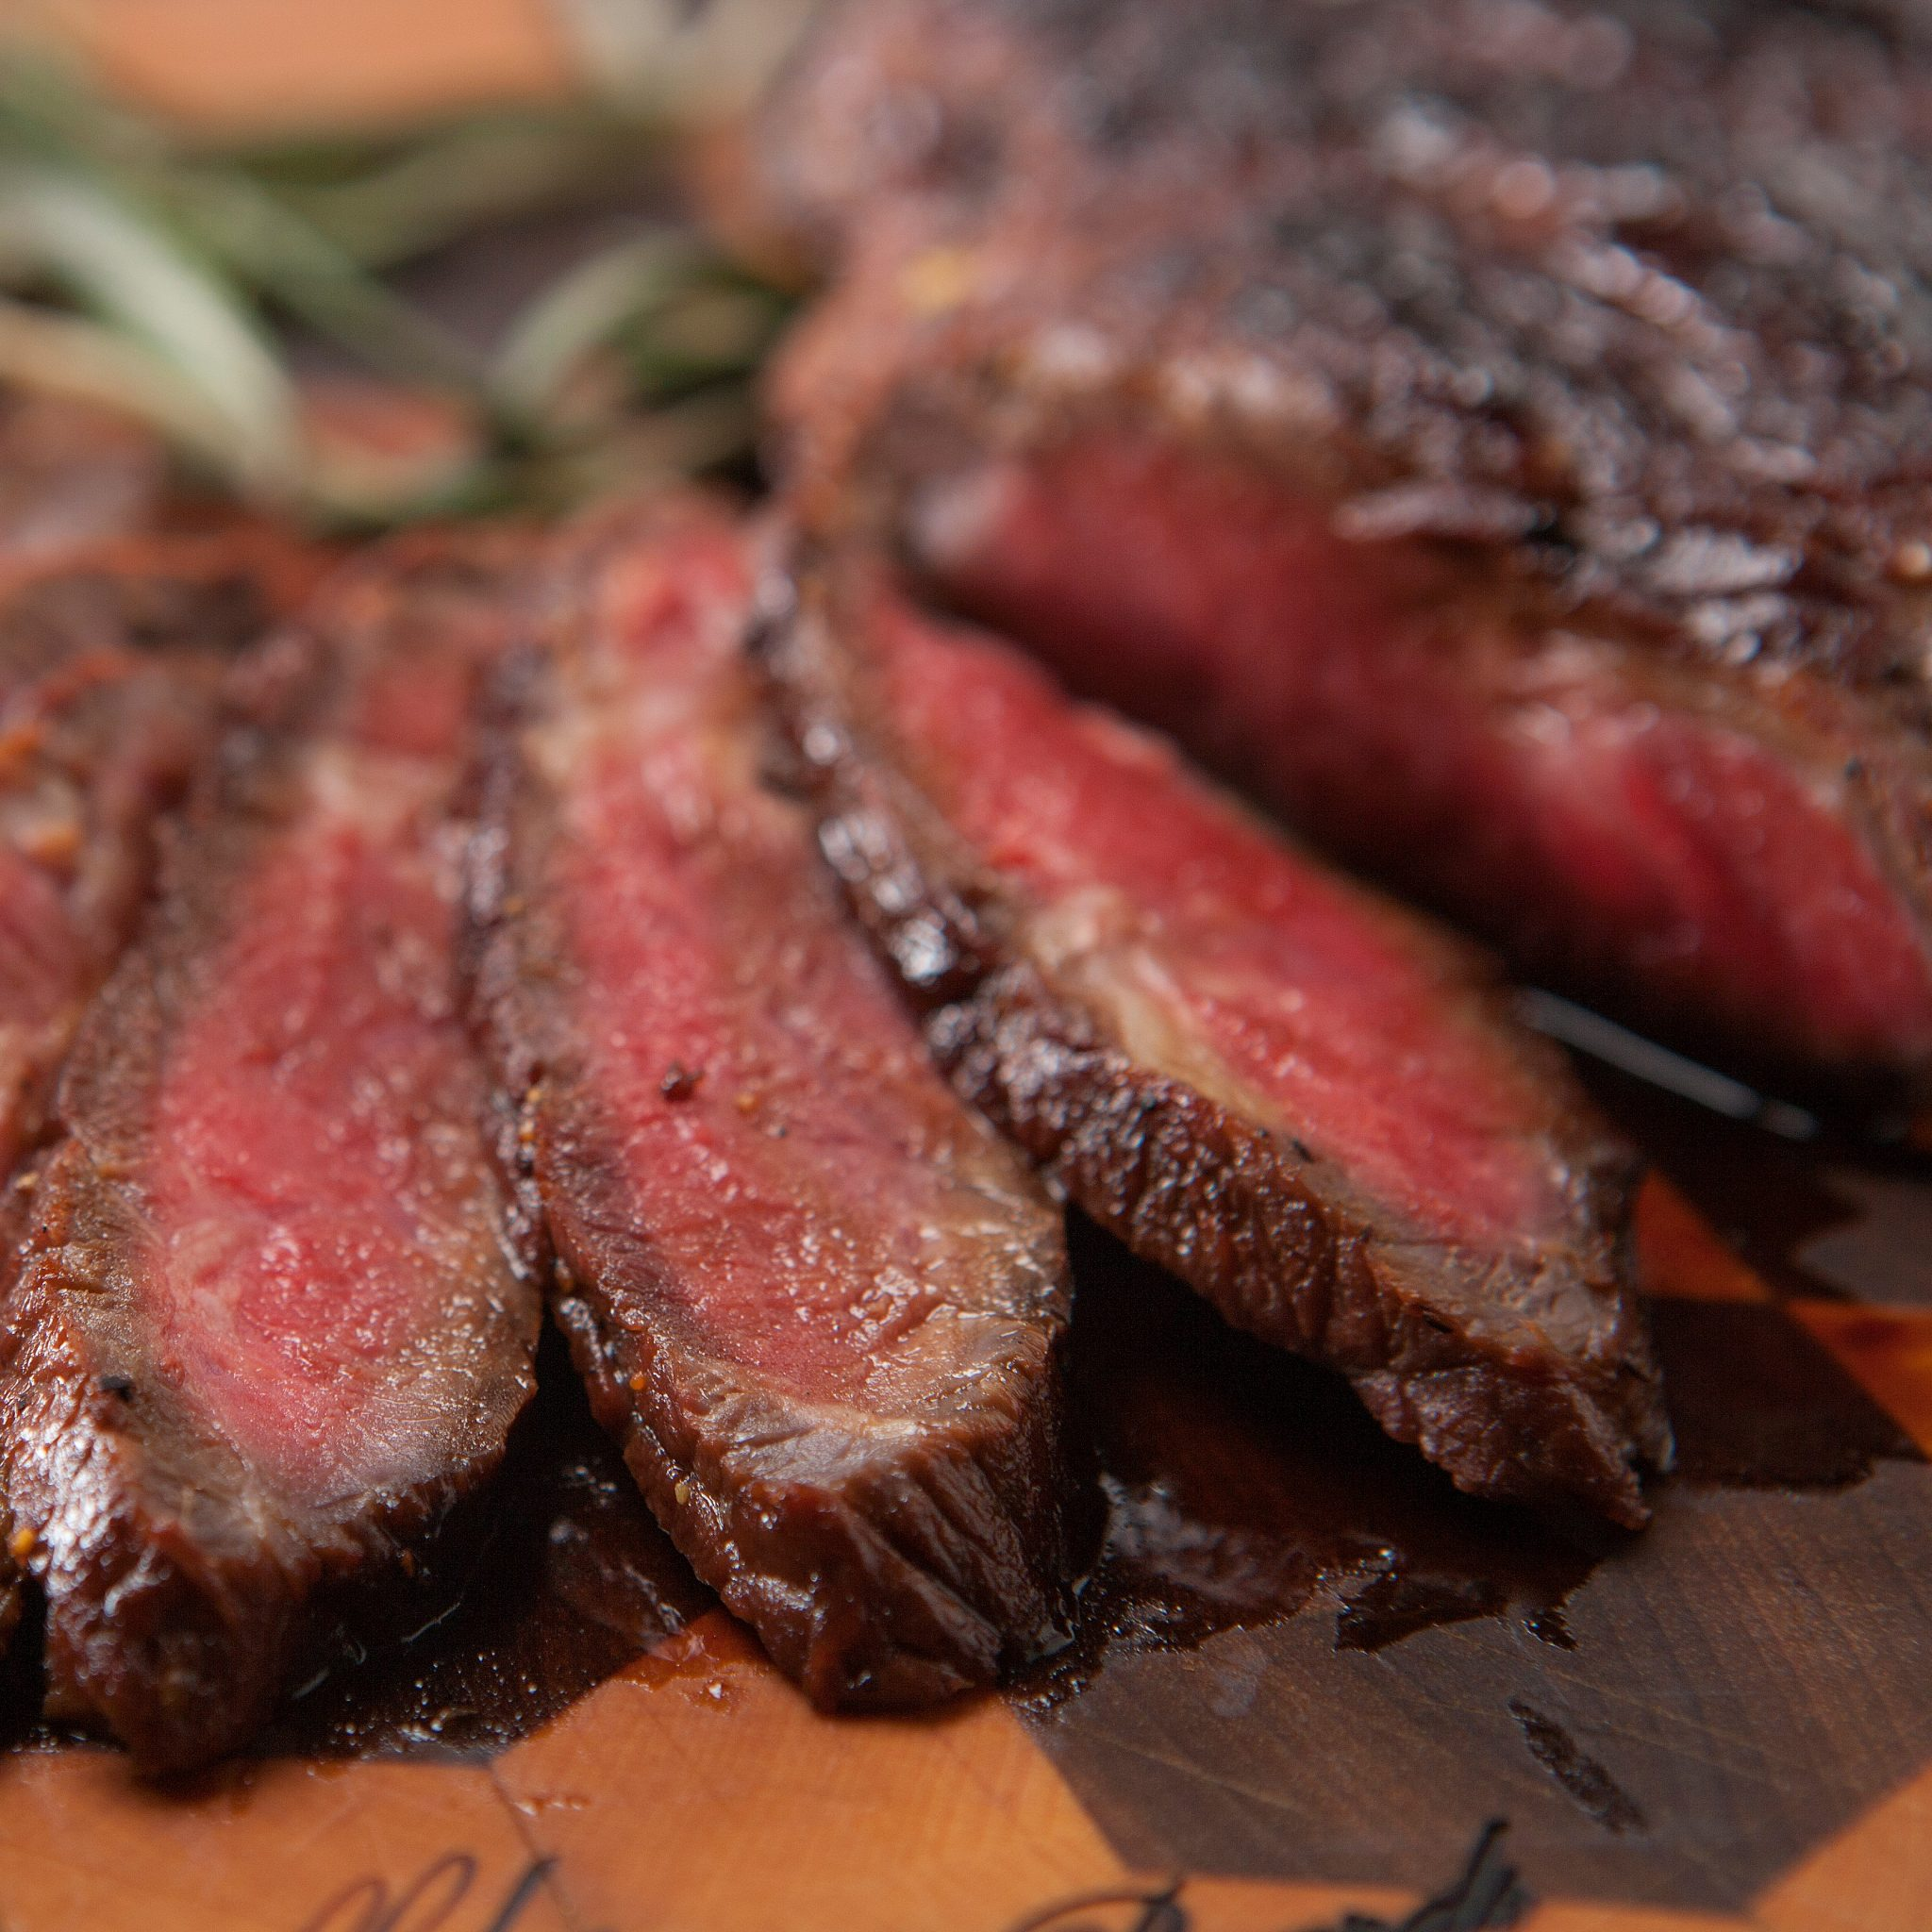 Sliced marinated London broil fanned out on a wooden cutting board.